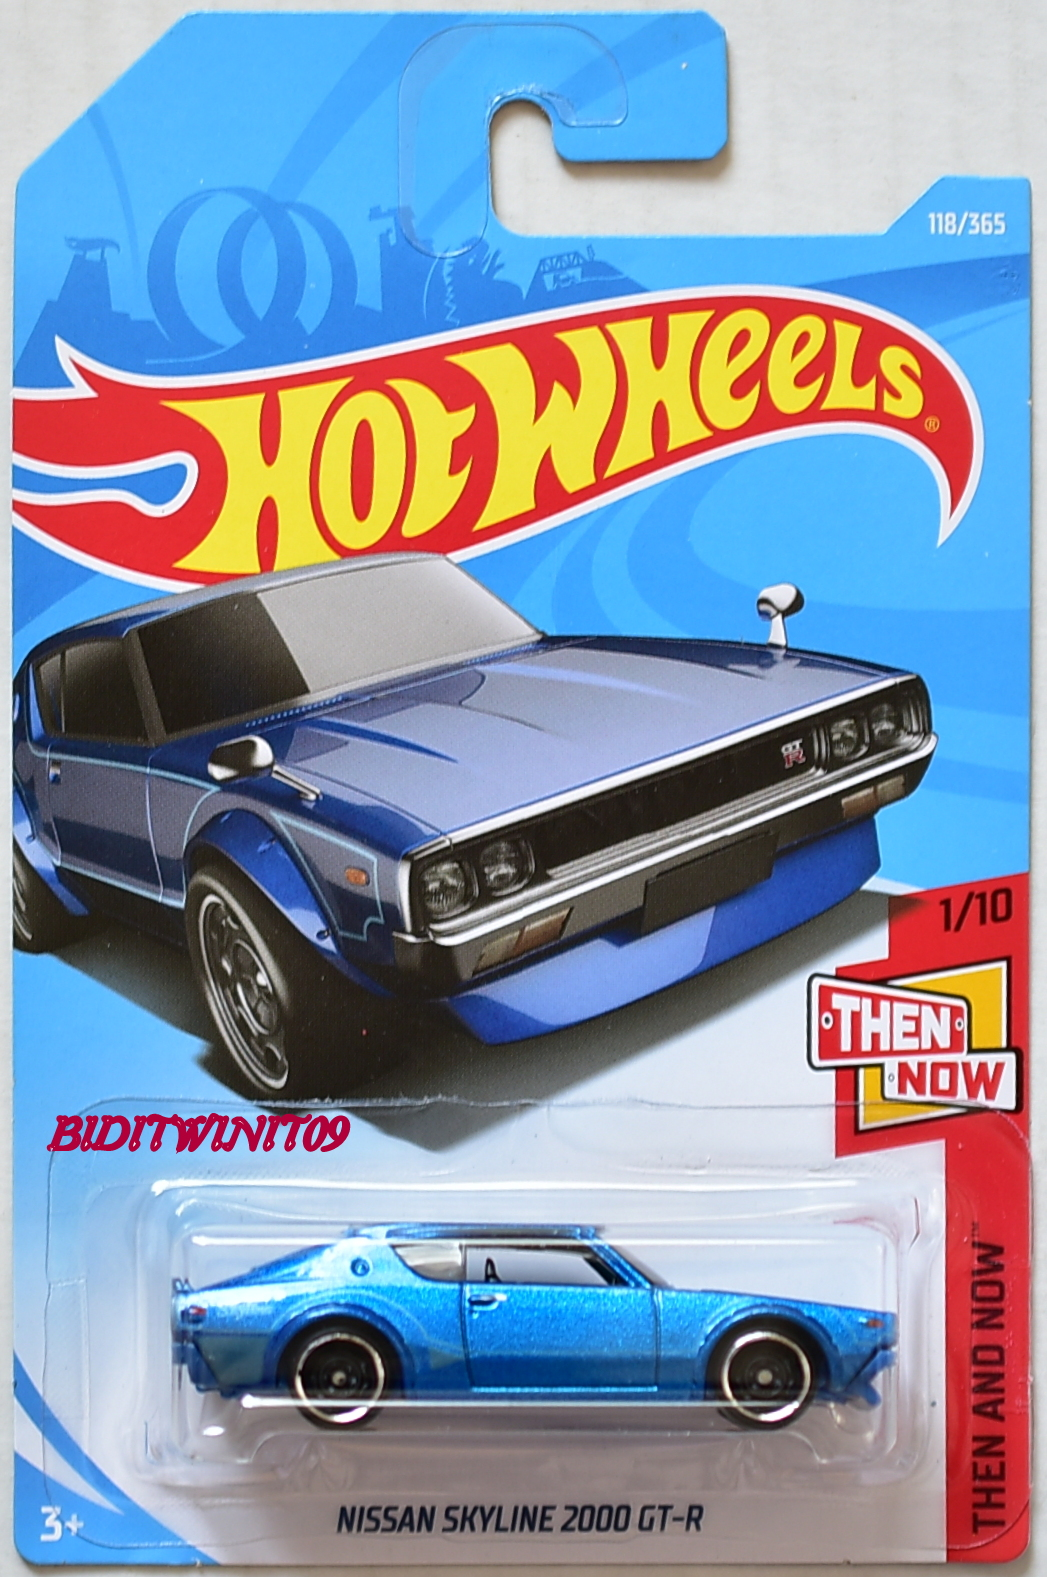 HOT WHEELS 2018 THEN AND NOW NISSAN SKYLINE 2000 GT-X #1/10 BLUE